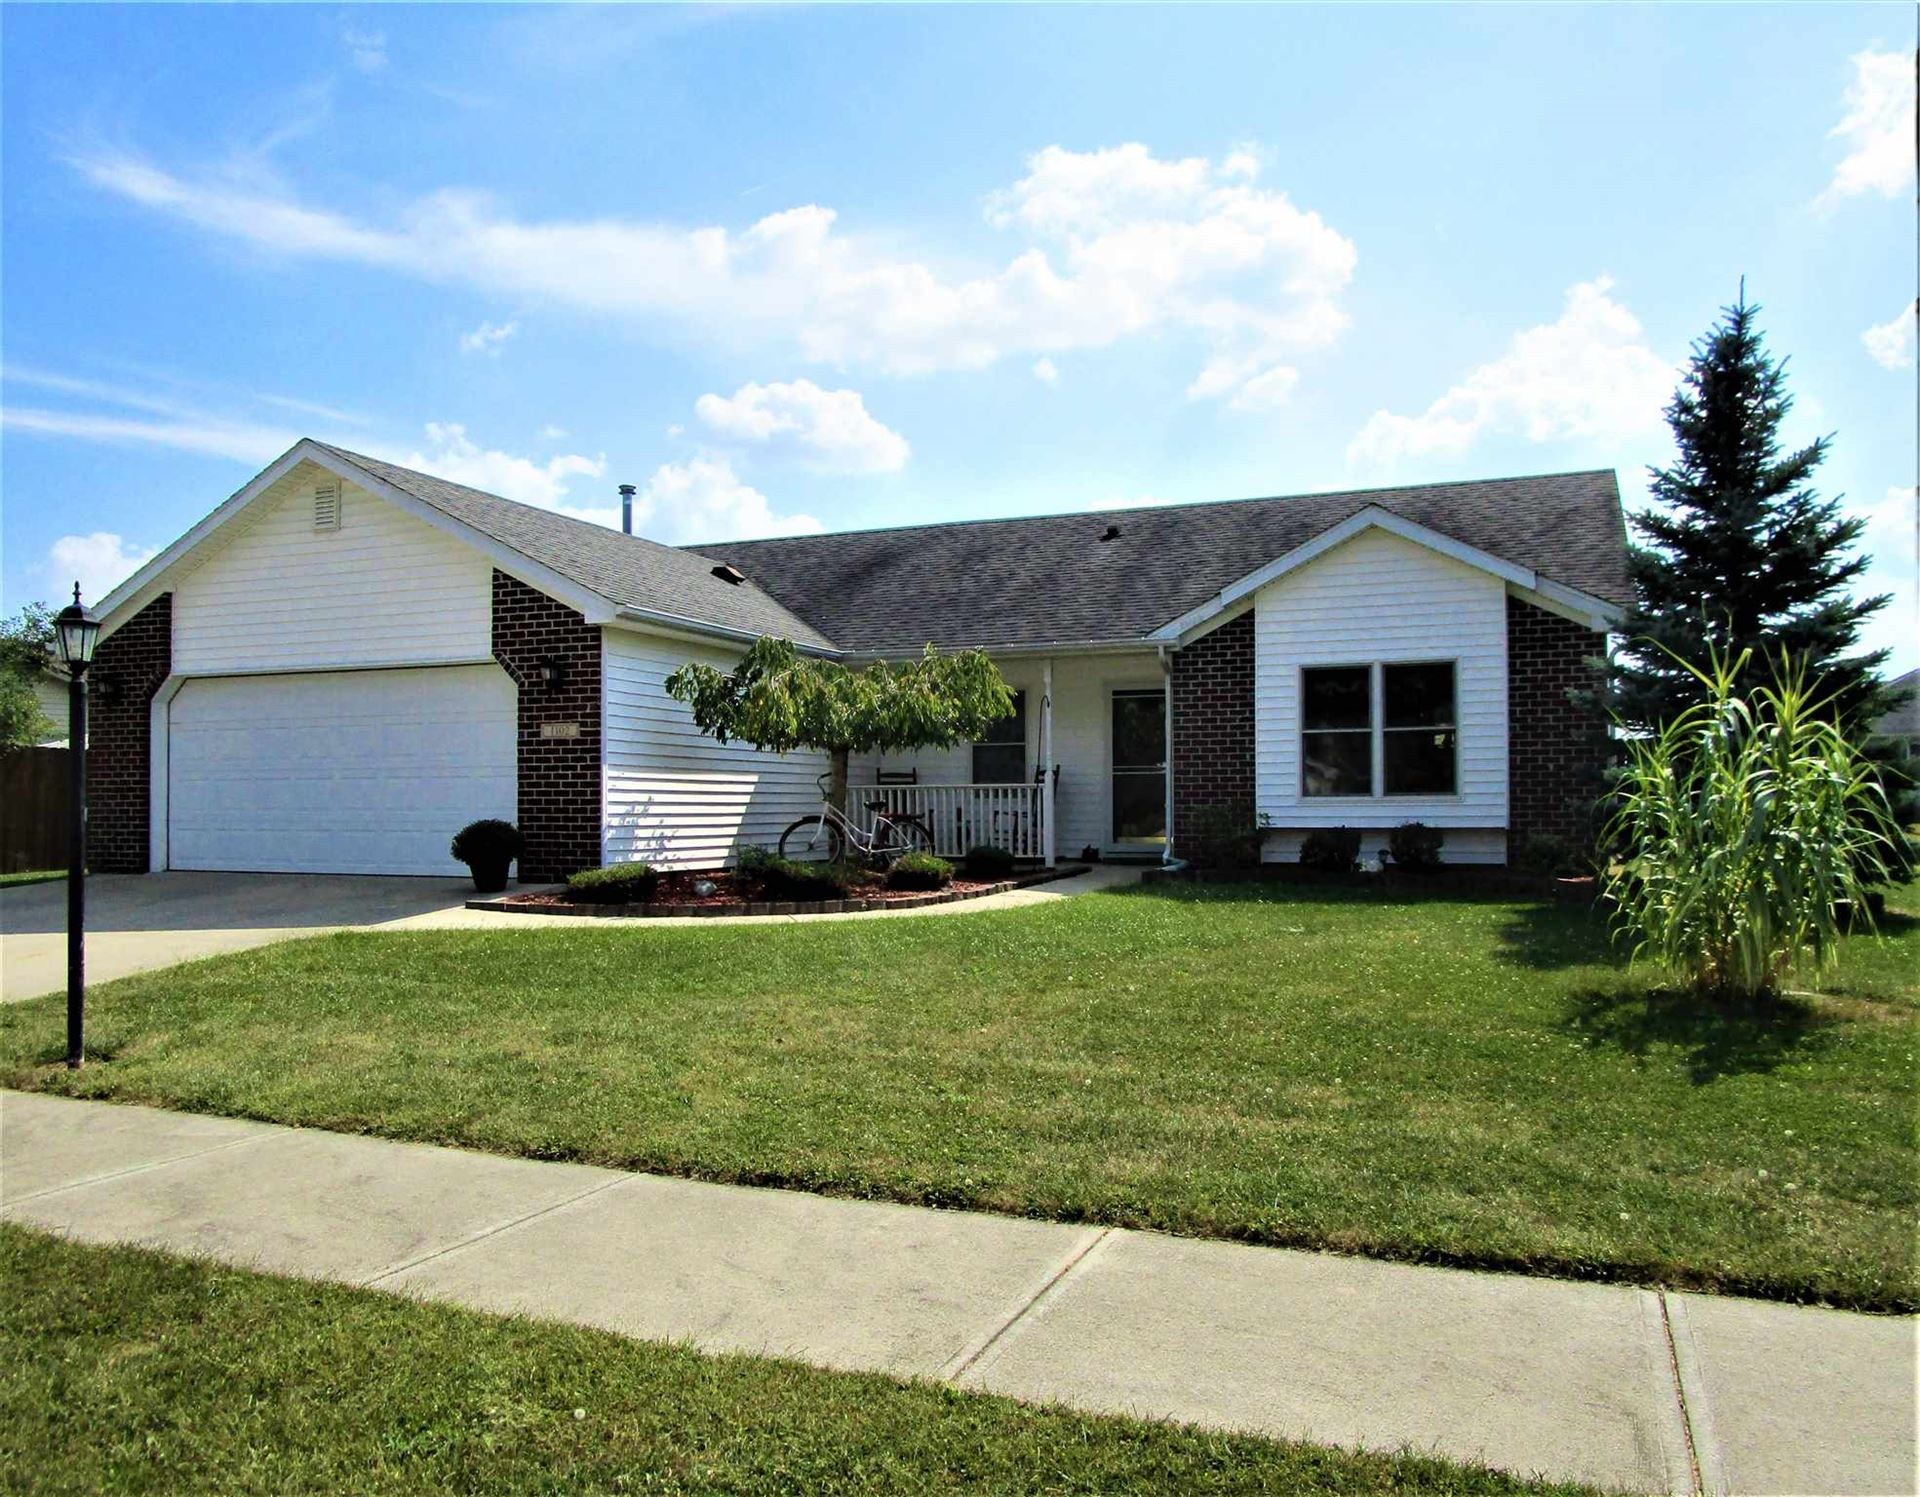 1102 Downridge Drive, Decatur, IN 46733 - MLS#: 201941522